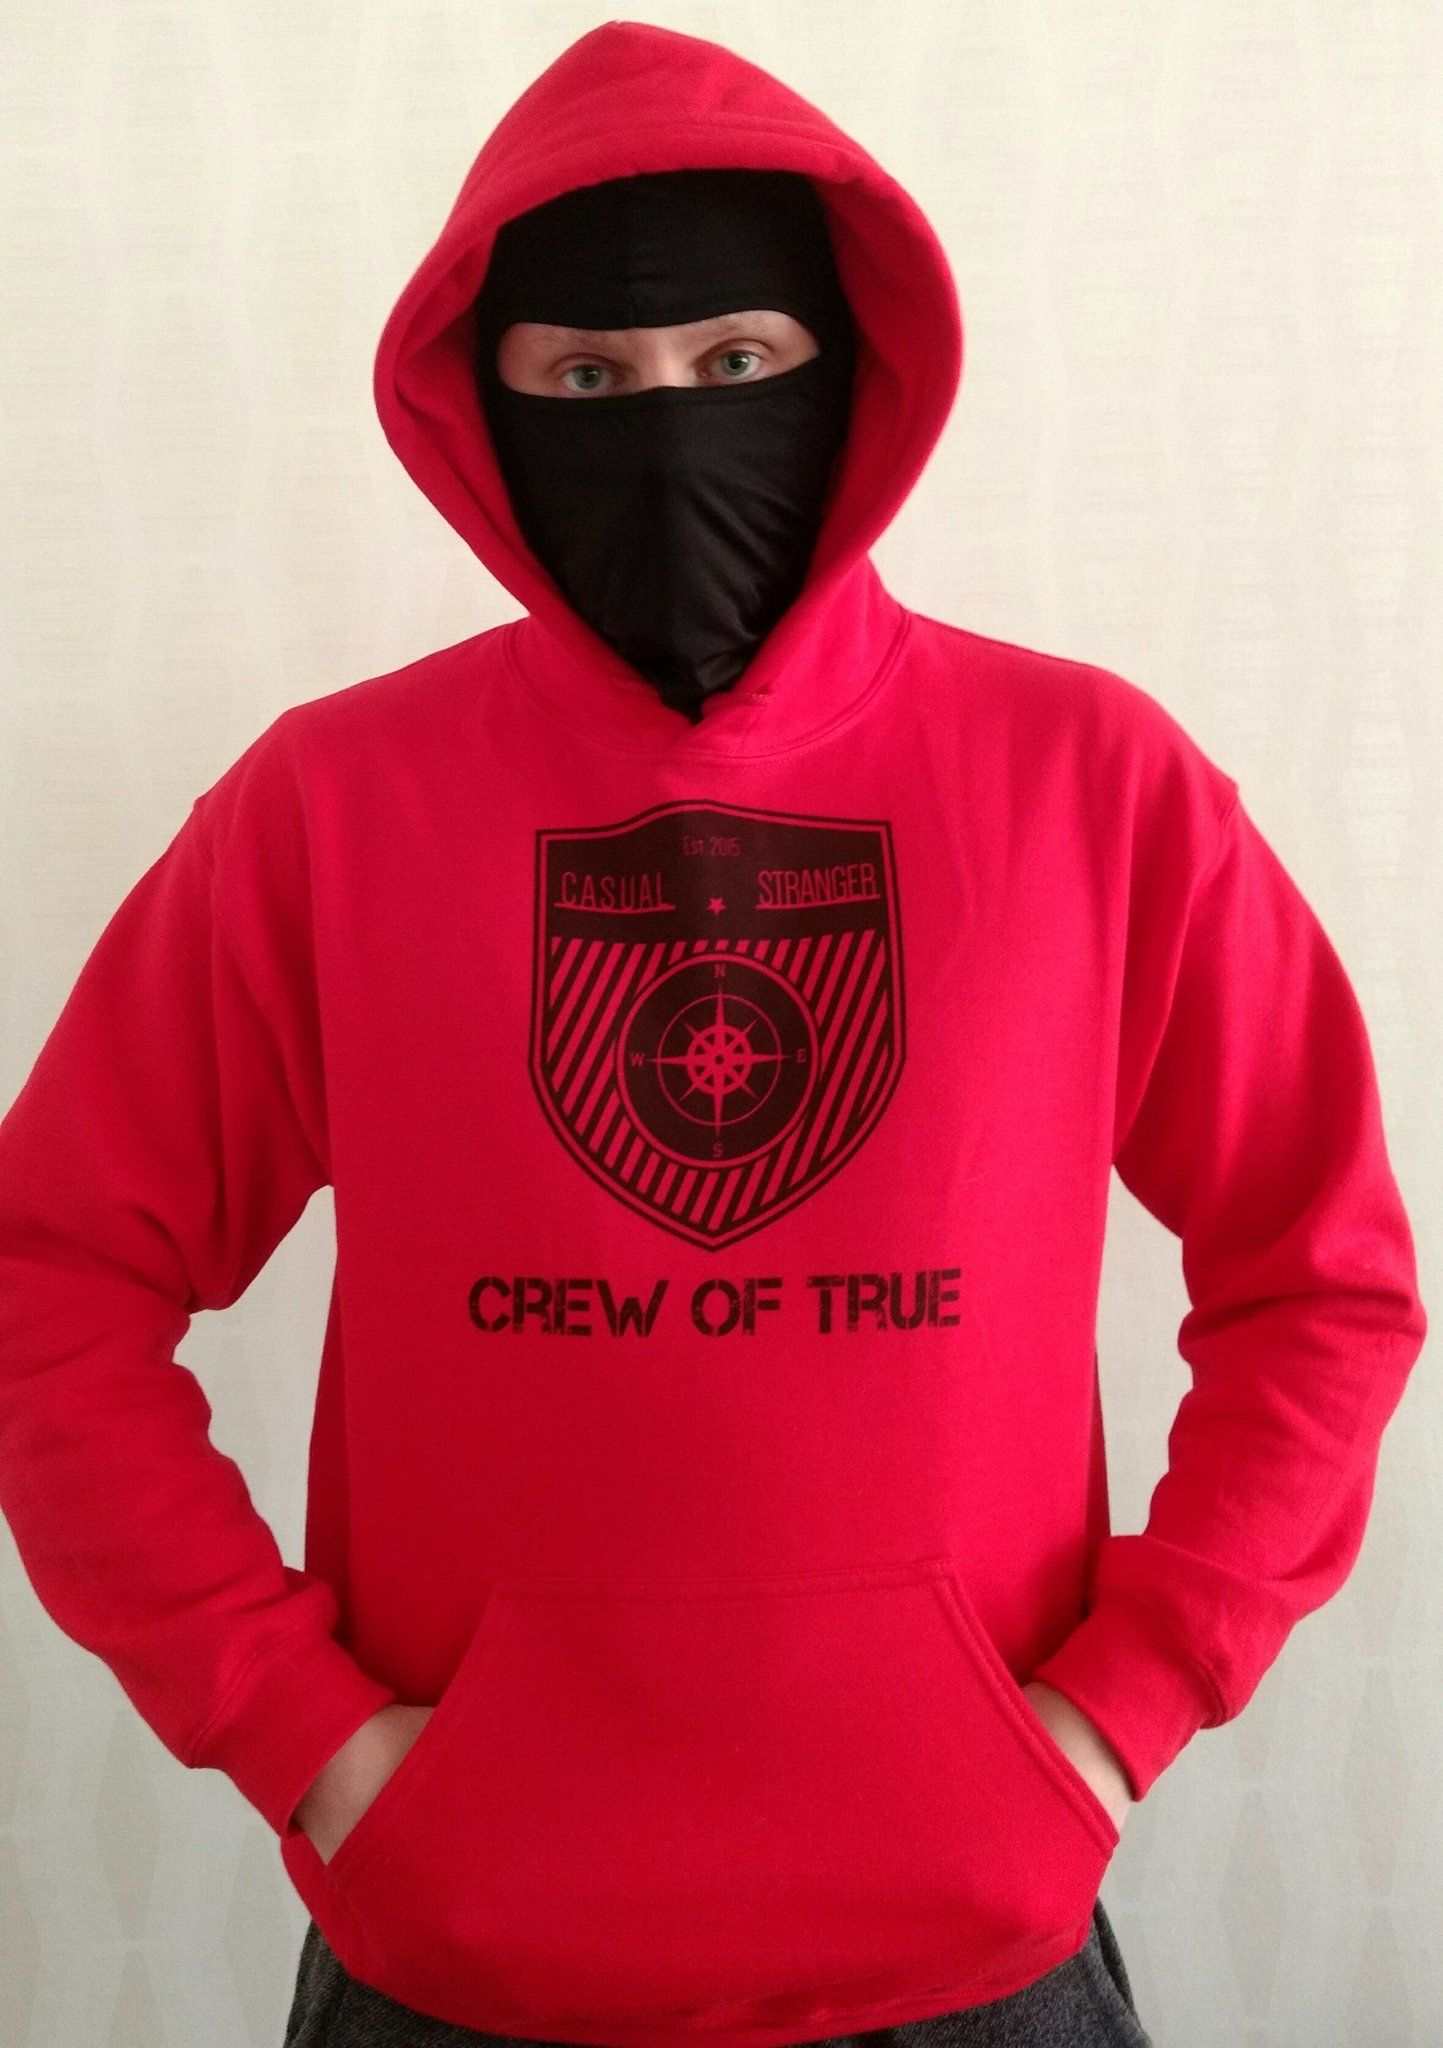 "Casual Stranger på Twitter: ""Original Crew Of True Casual Stranger! #casualstranger #casual #CasualFriday #nofacenoname #hoodiefriday #hoodie #ultraswear #Original https://t.co/21NbvlOLu2"""